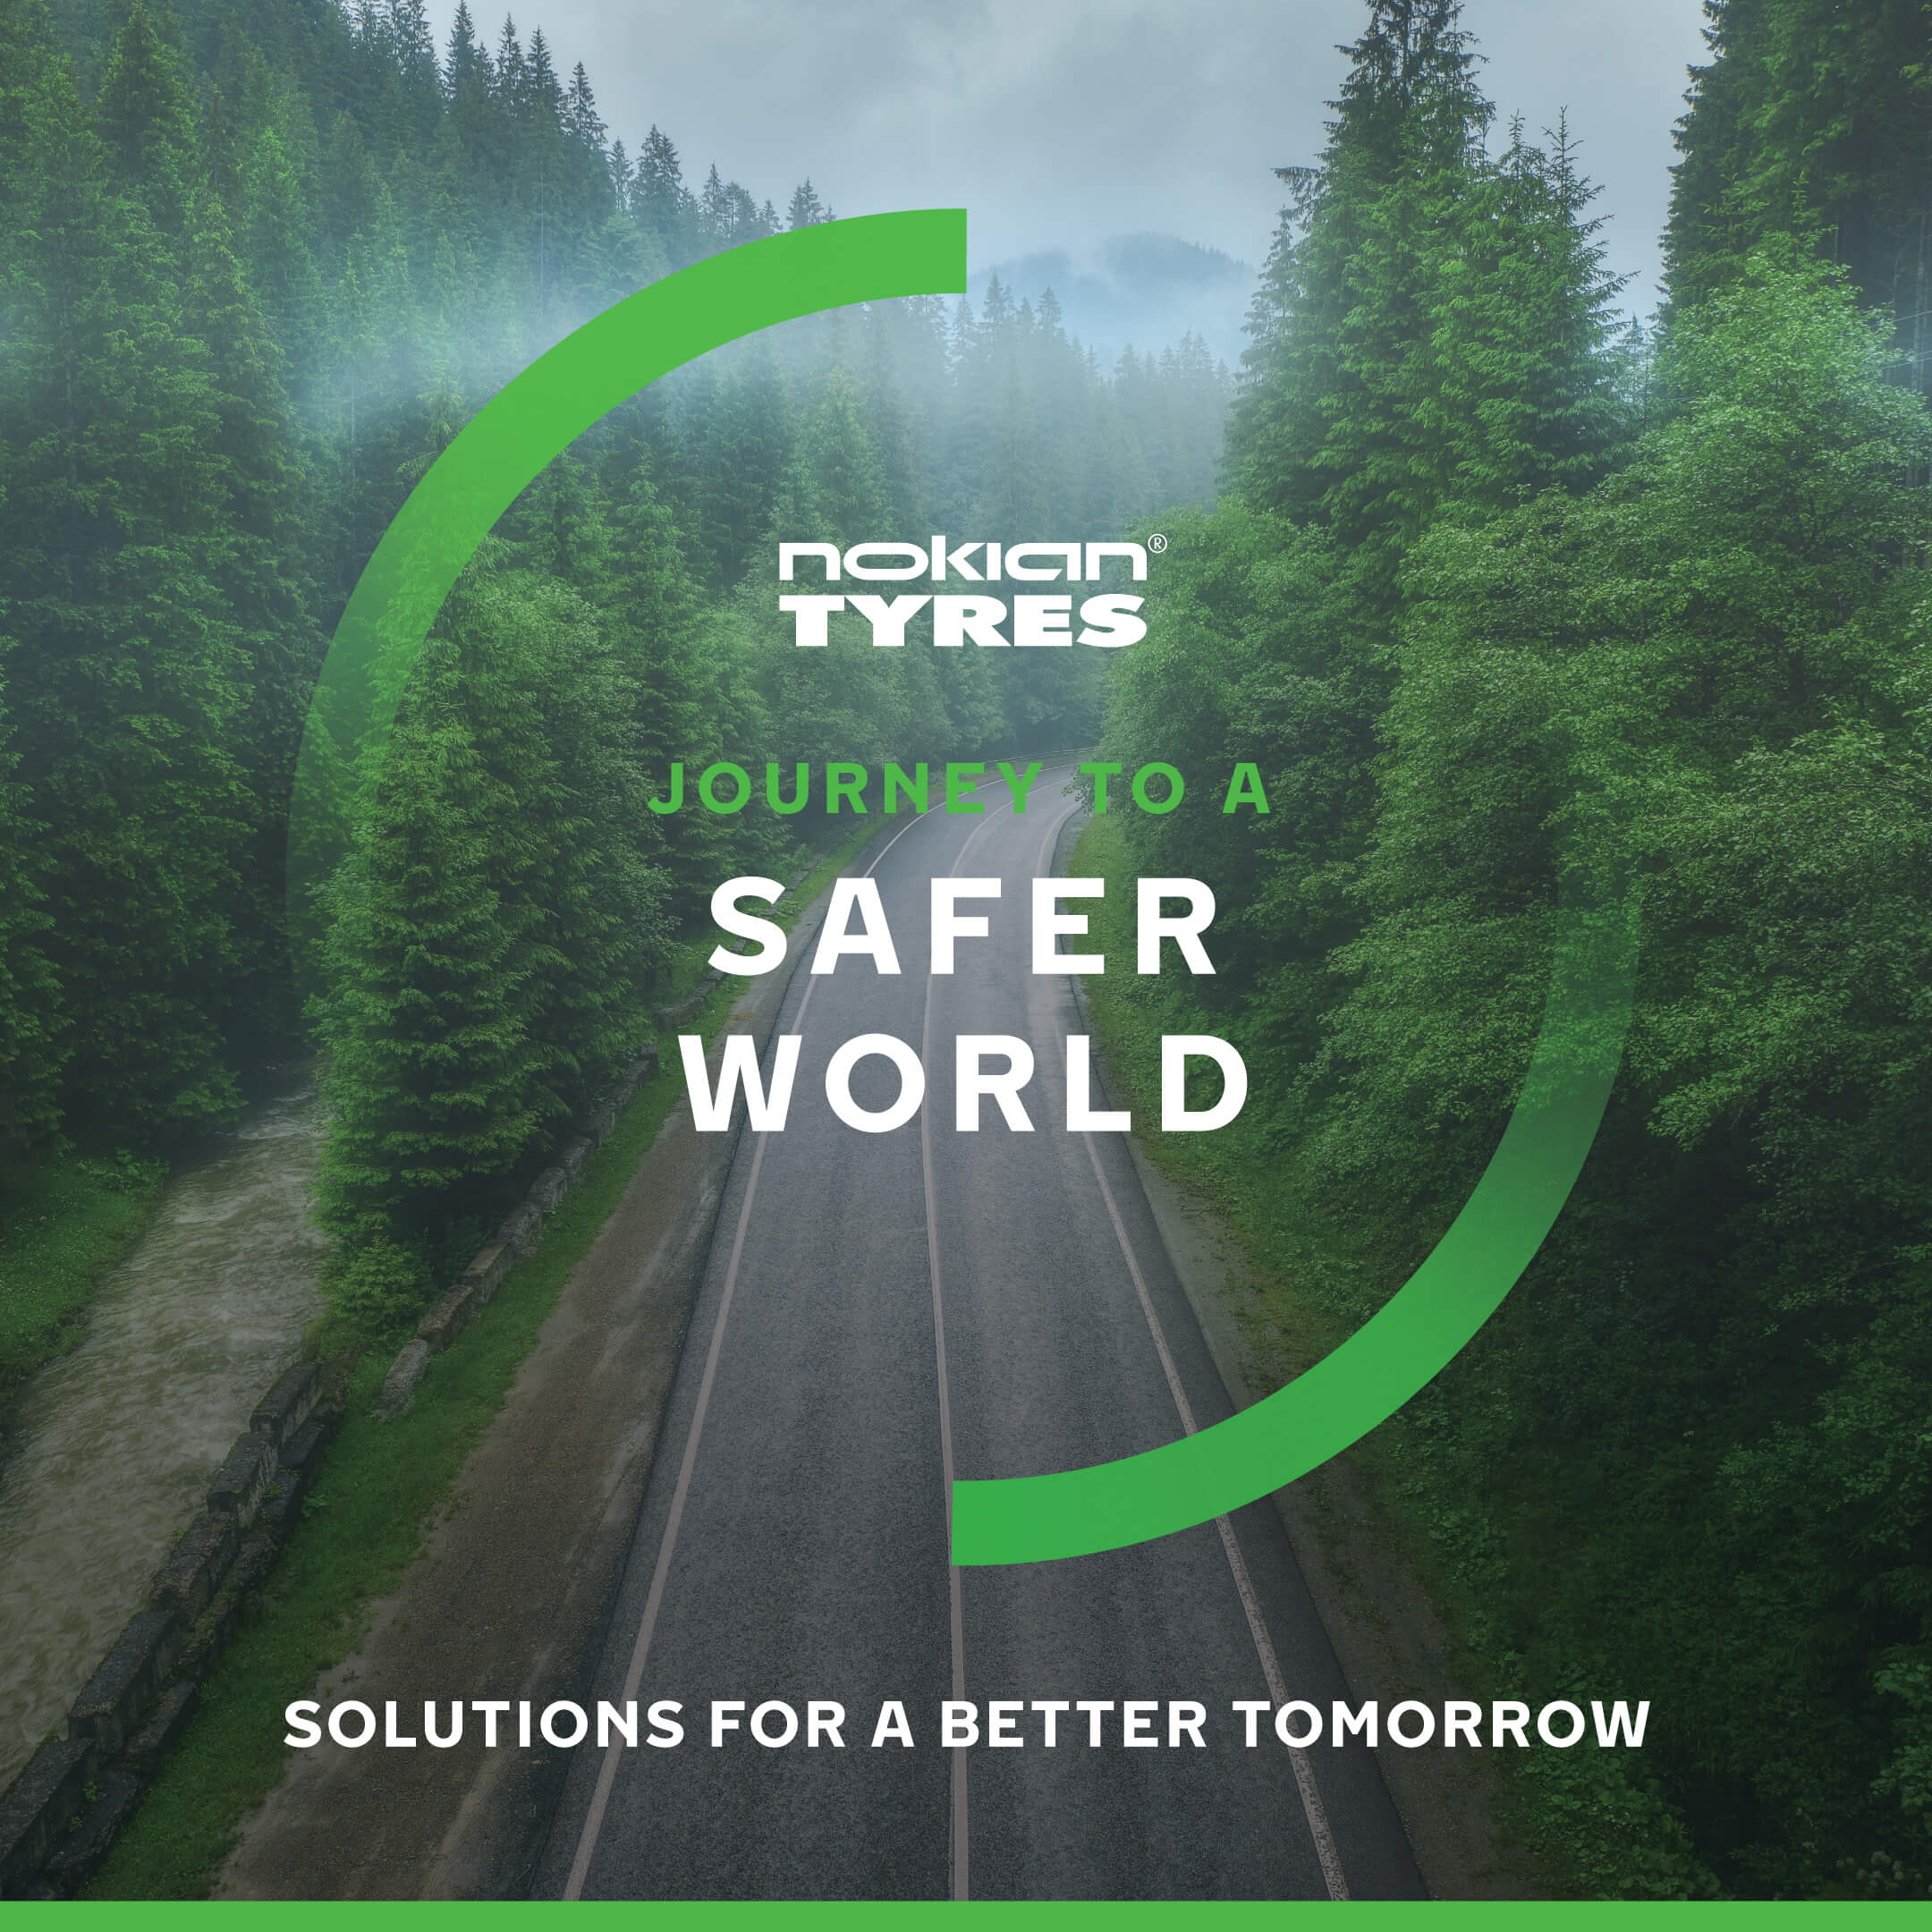 Journey to a safer world